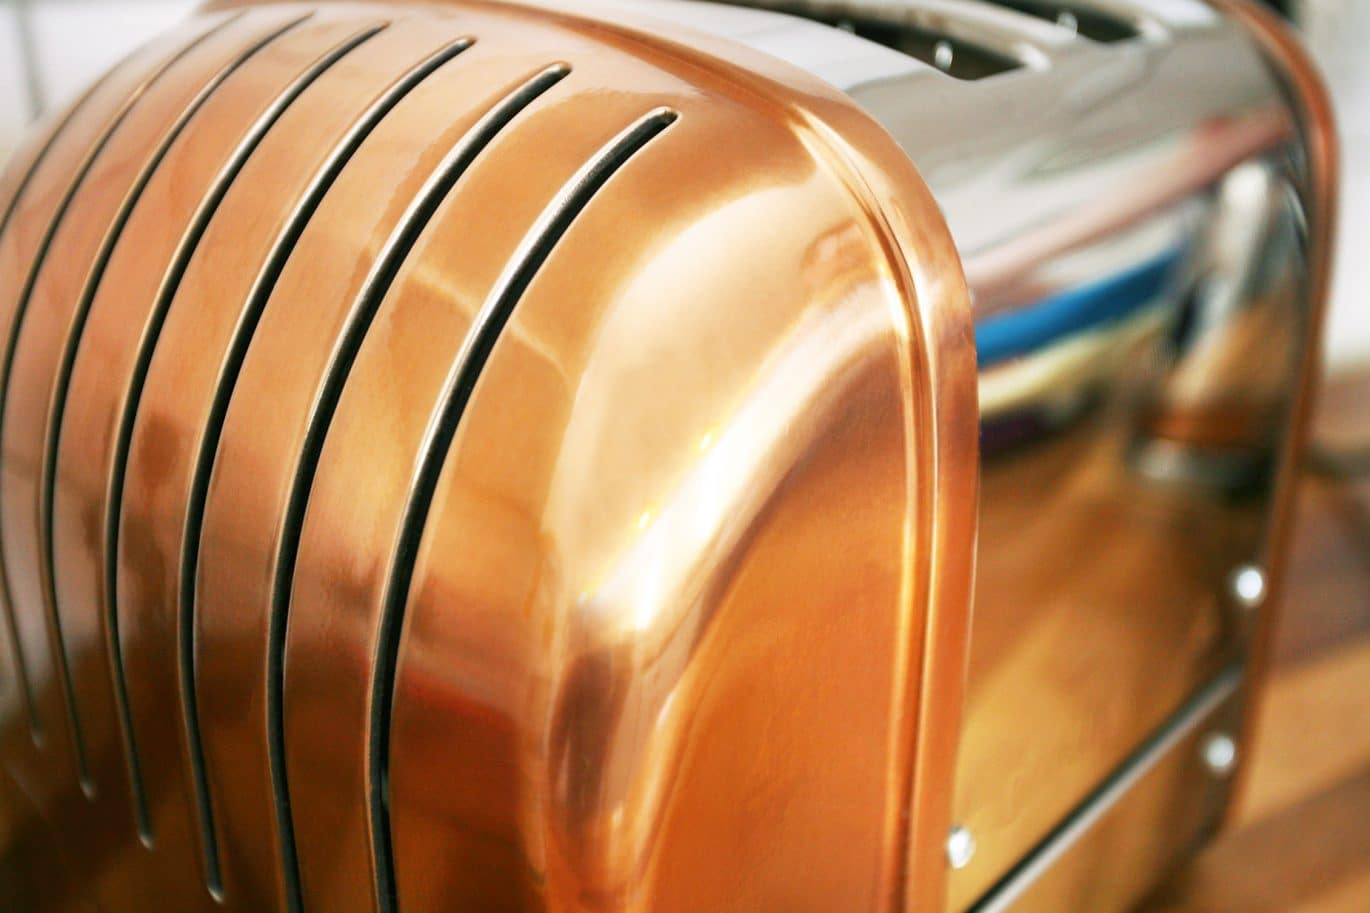 Close up of a clean, shiny cleaning customer's copper coloured toaster